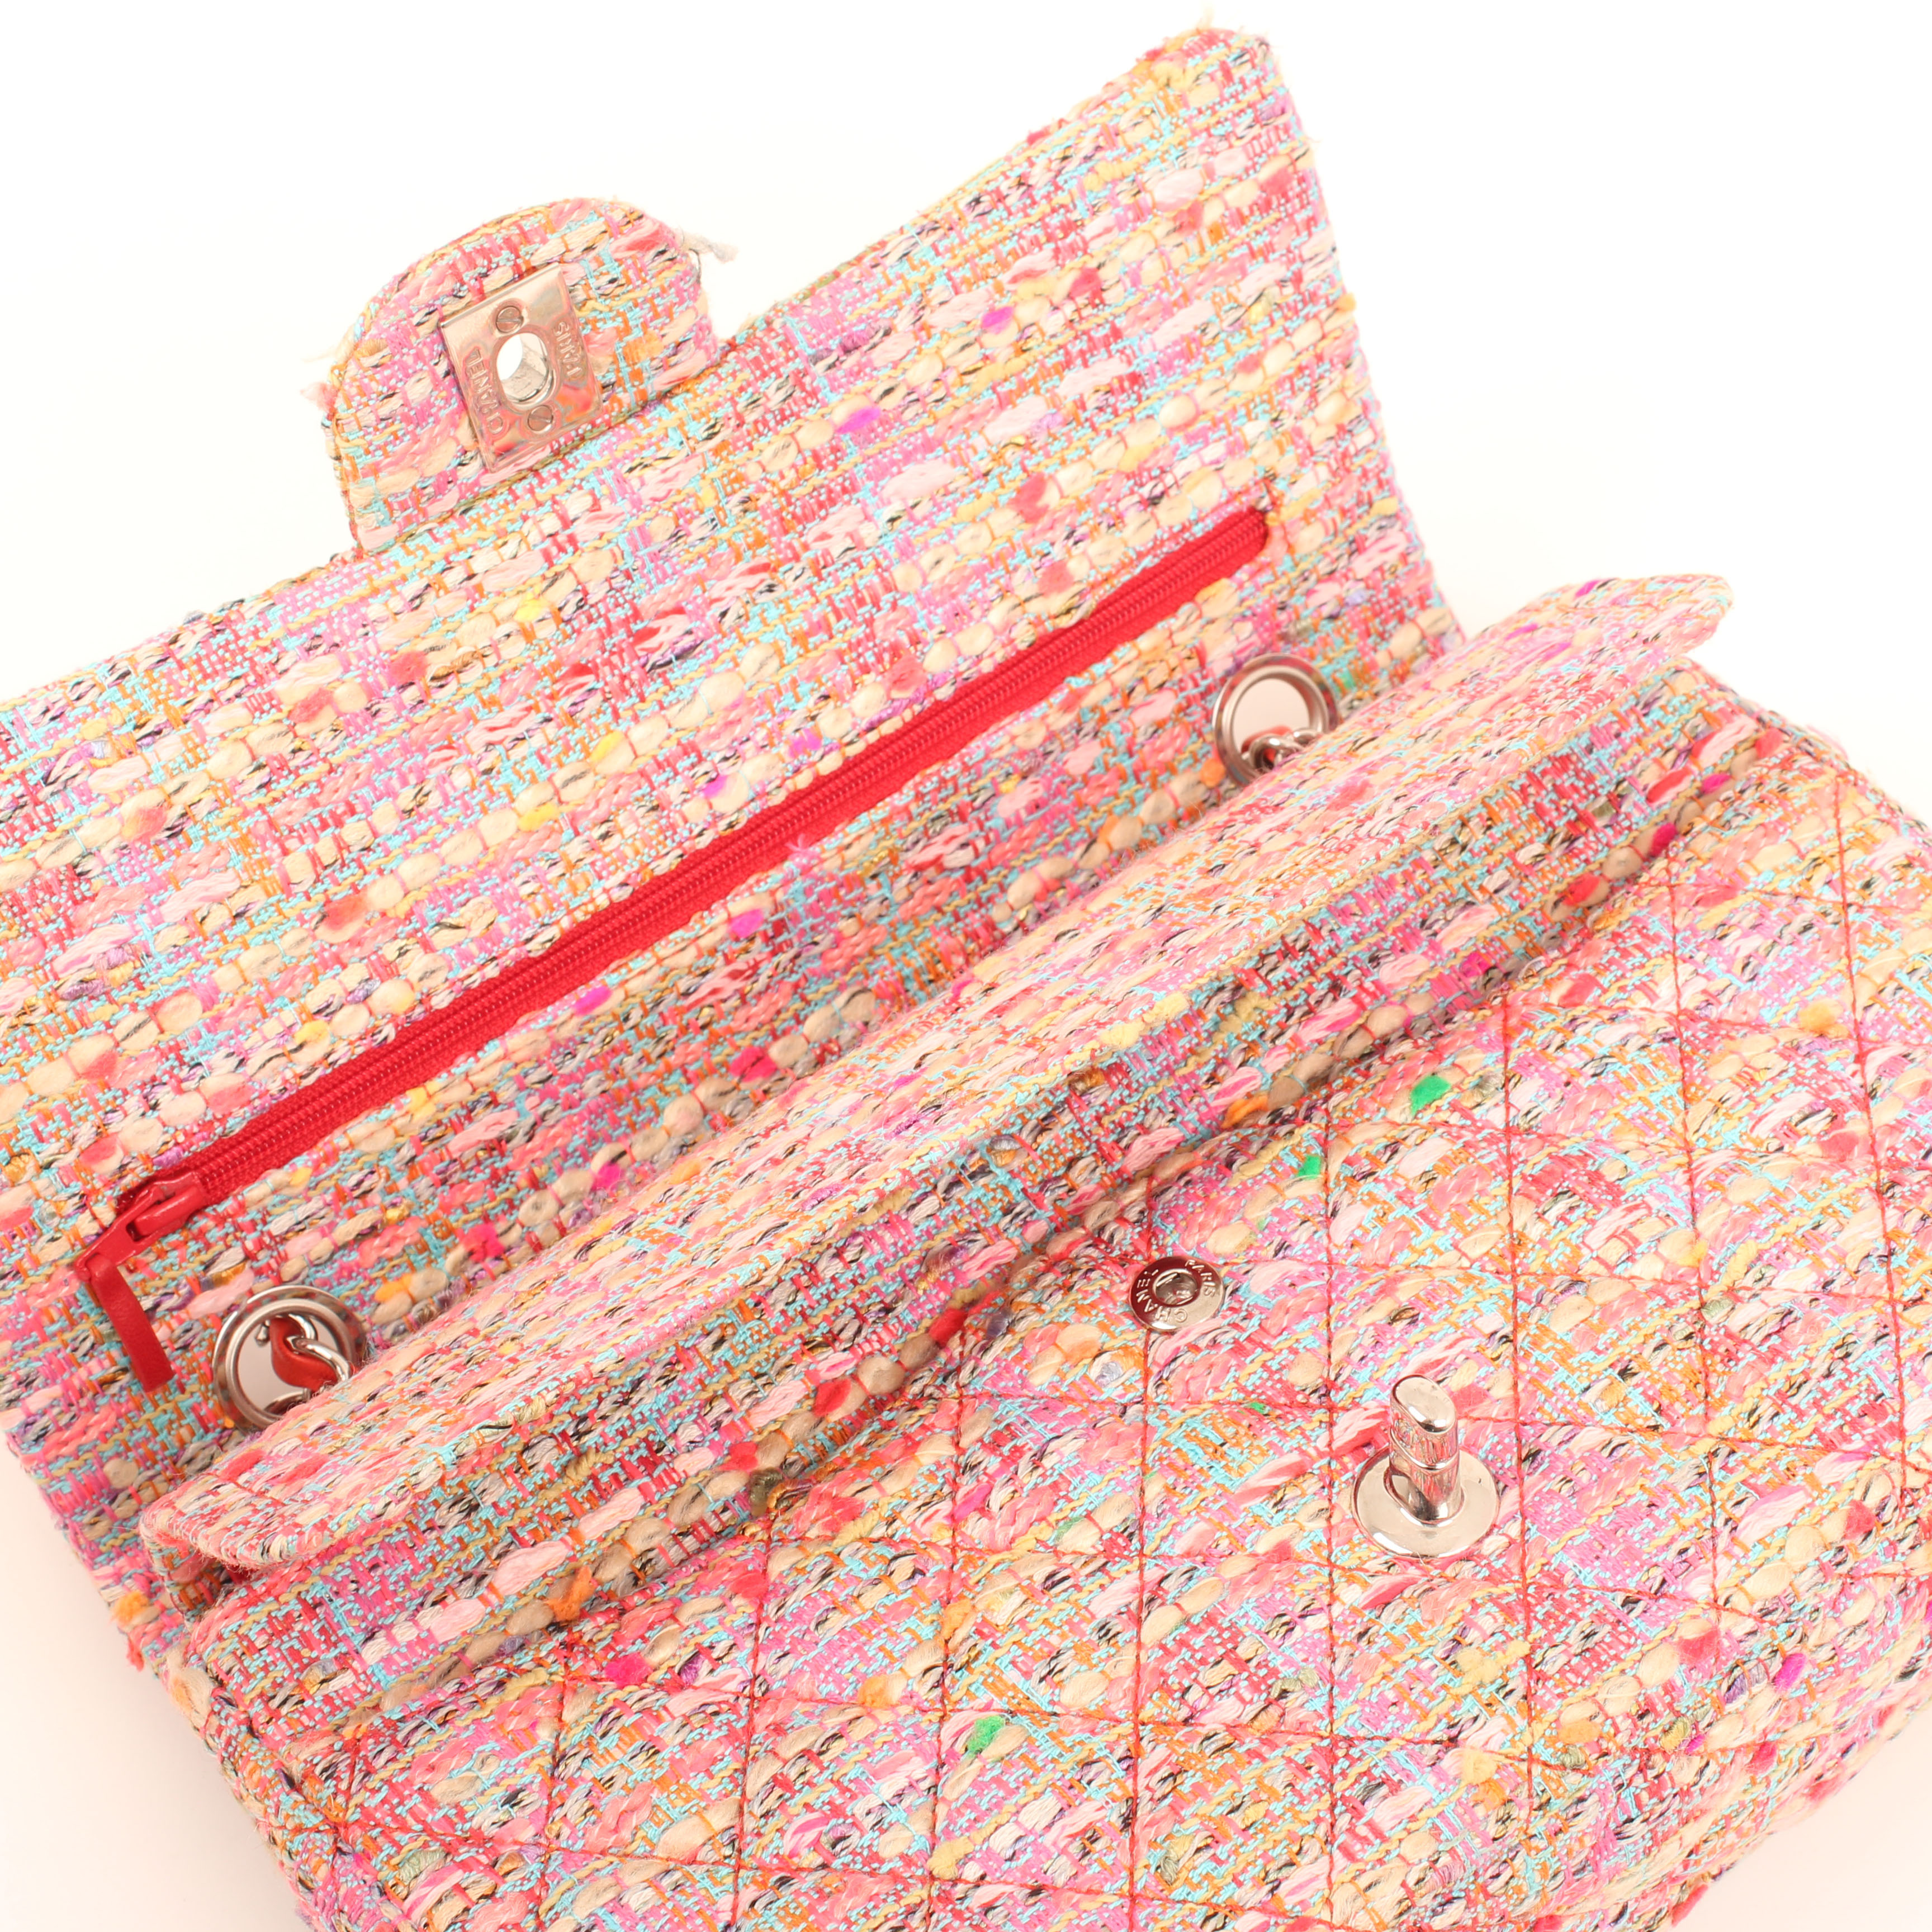 Image from chanel timeless tweed pink multicolor neon double flap bag open